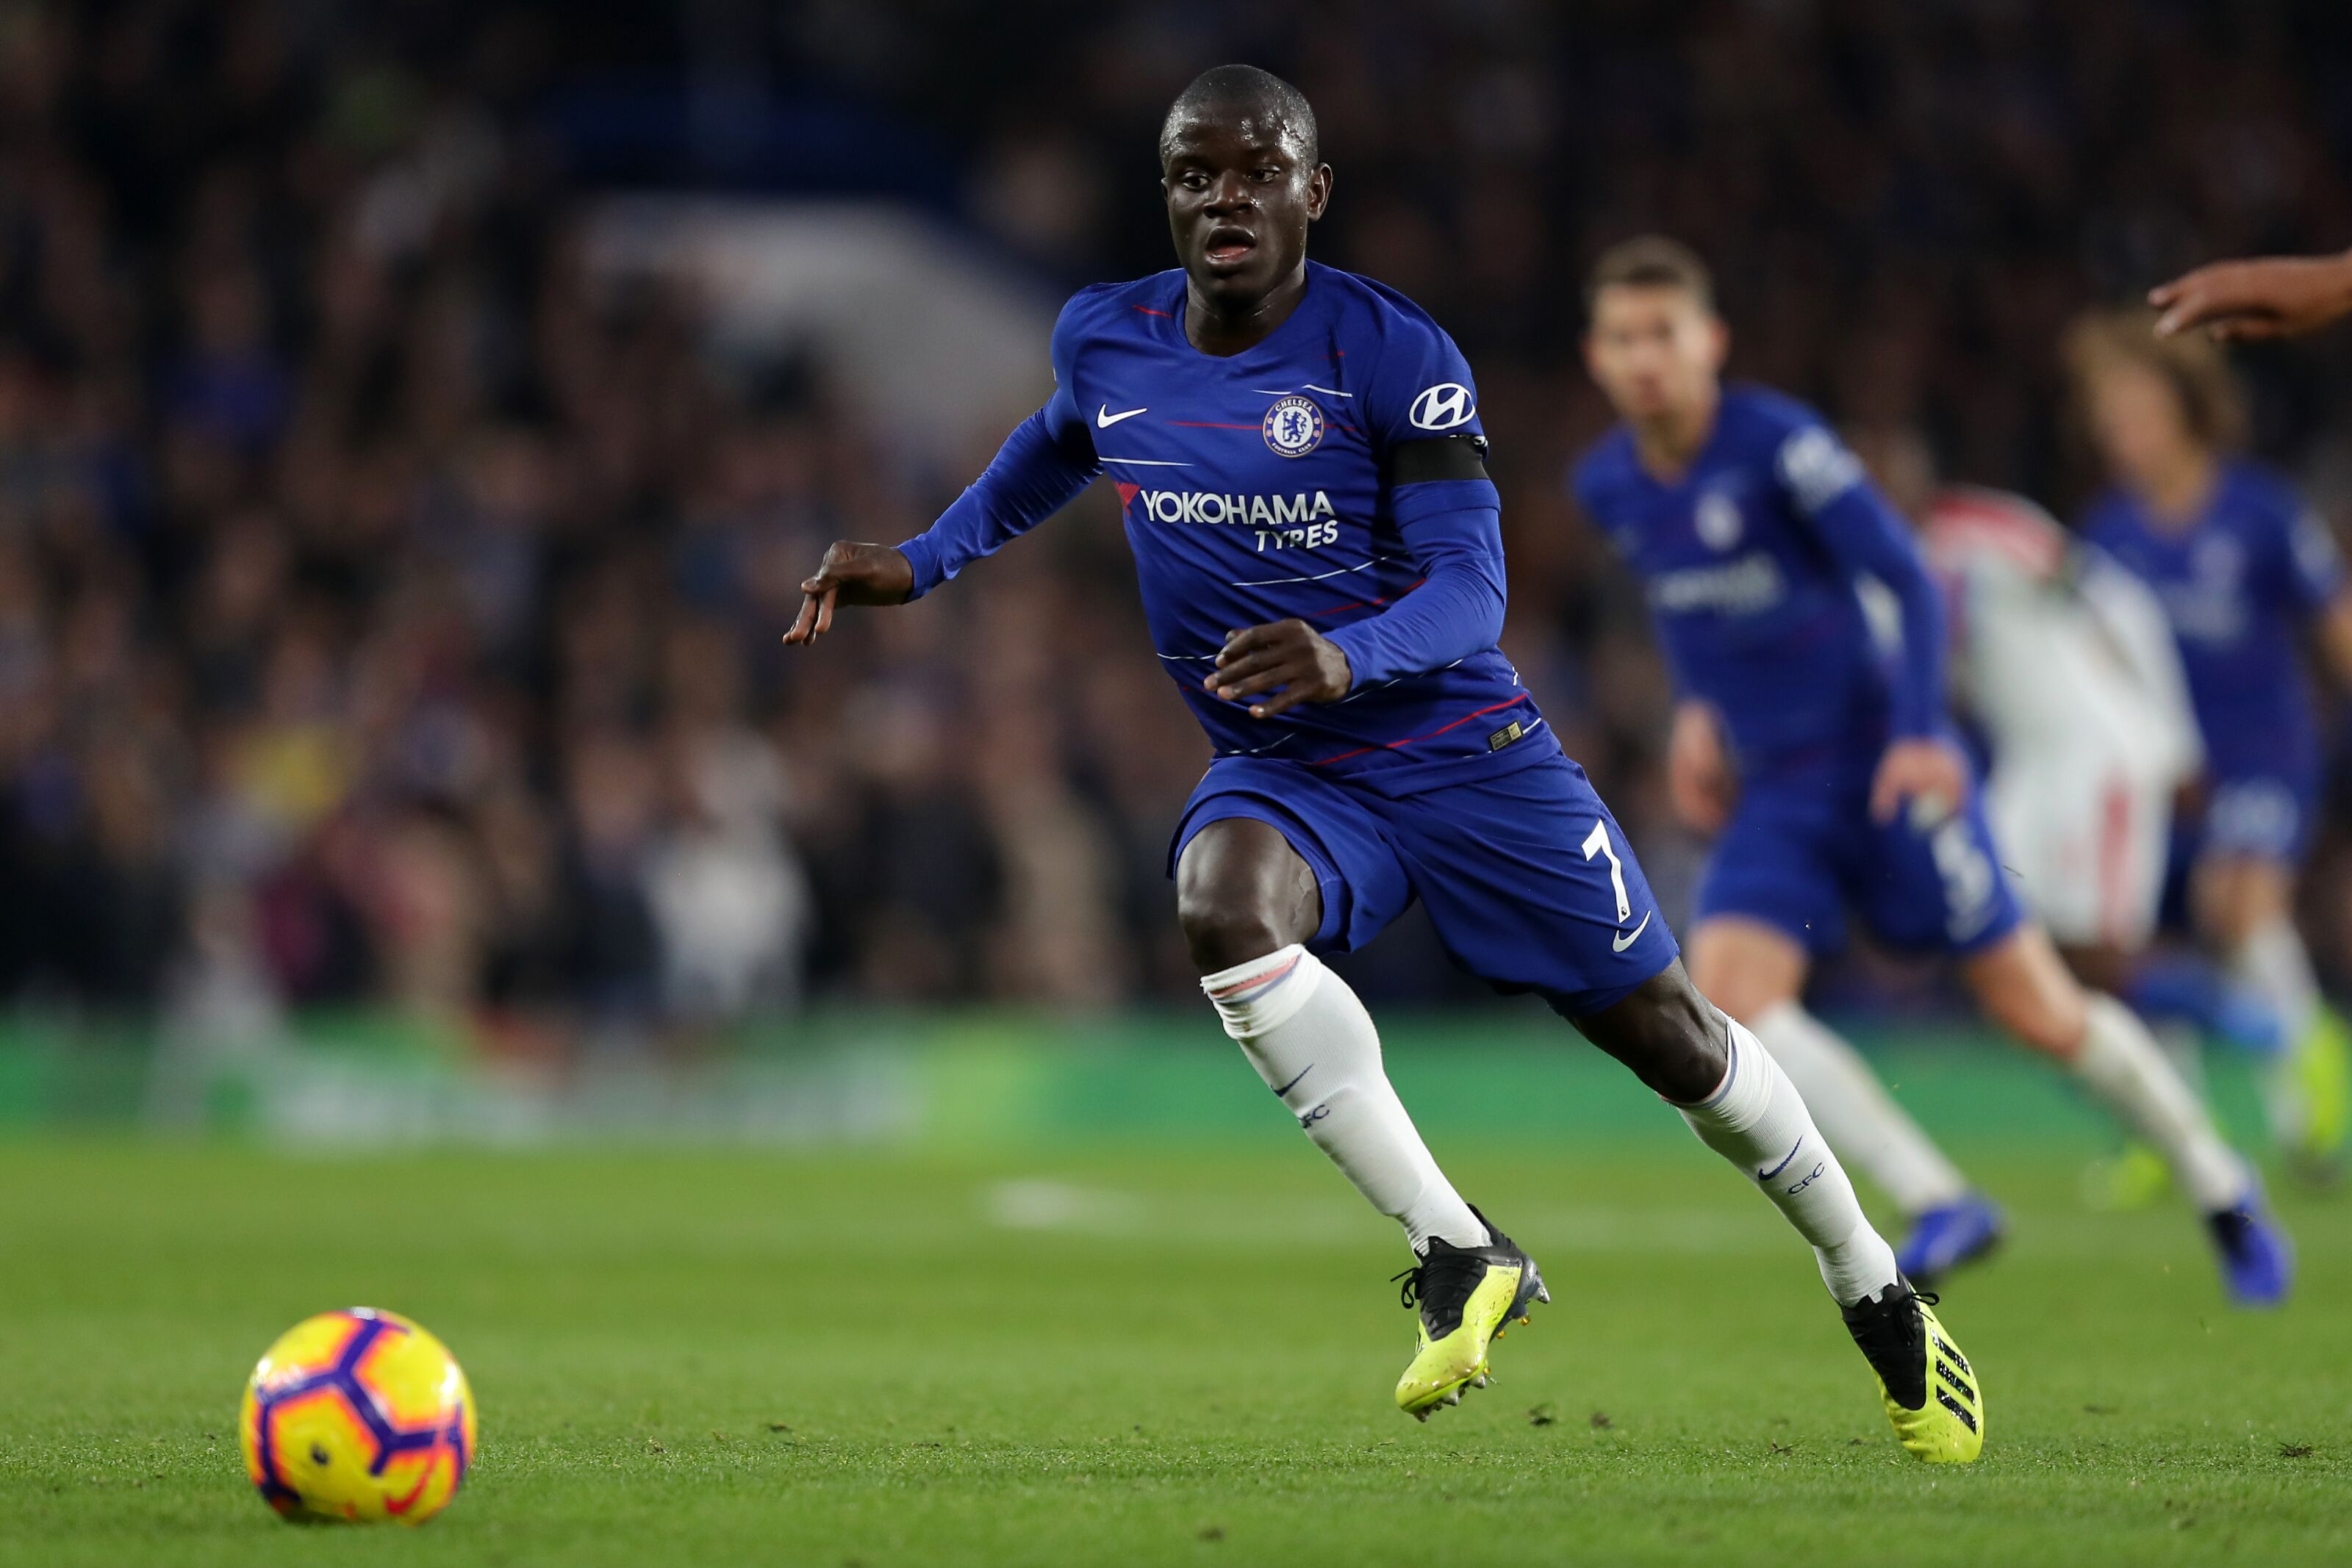 Chelsea: Four things to look for in home opener against Leicester City